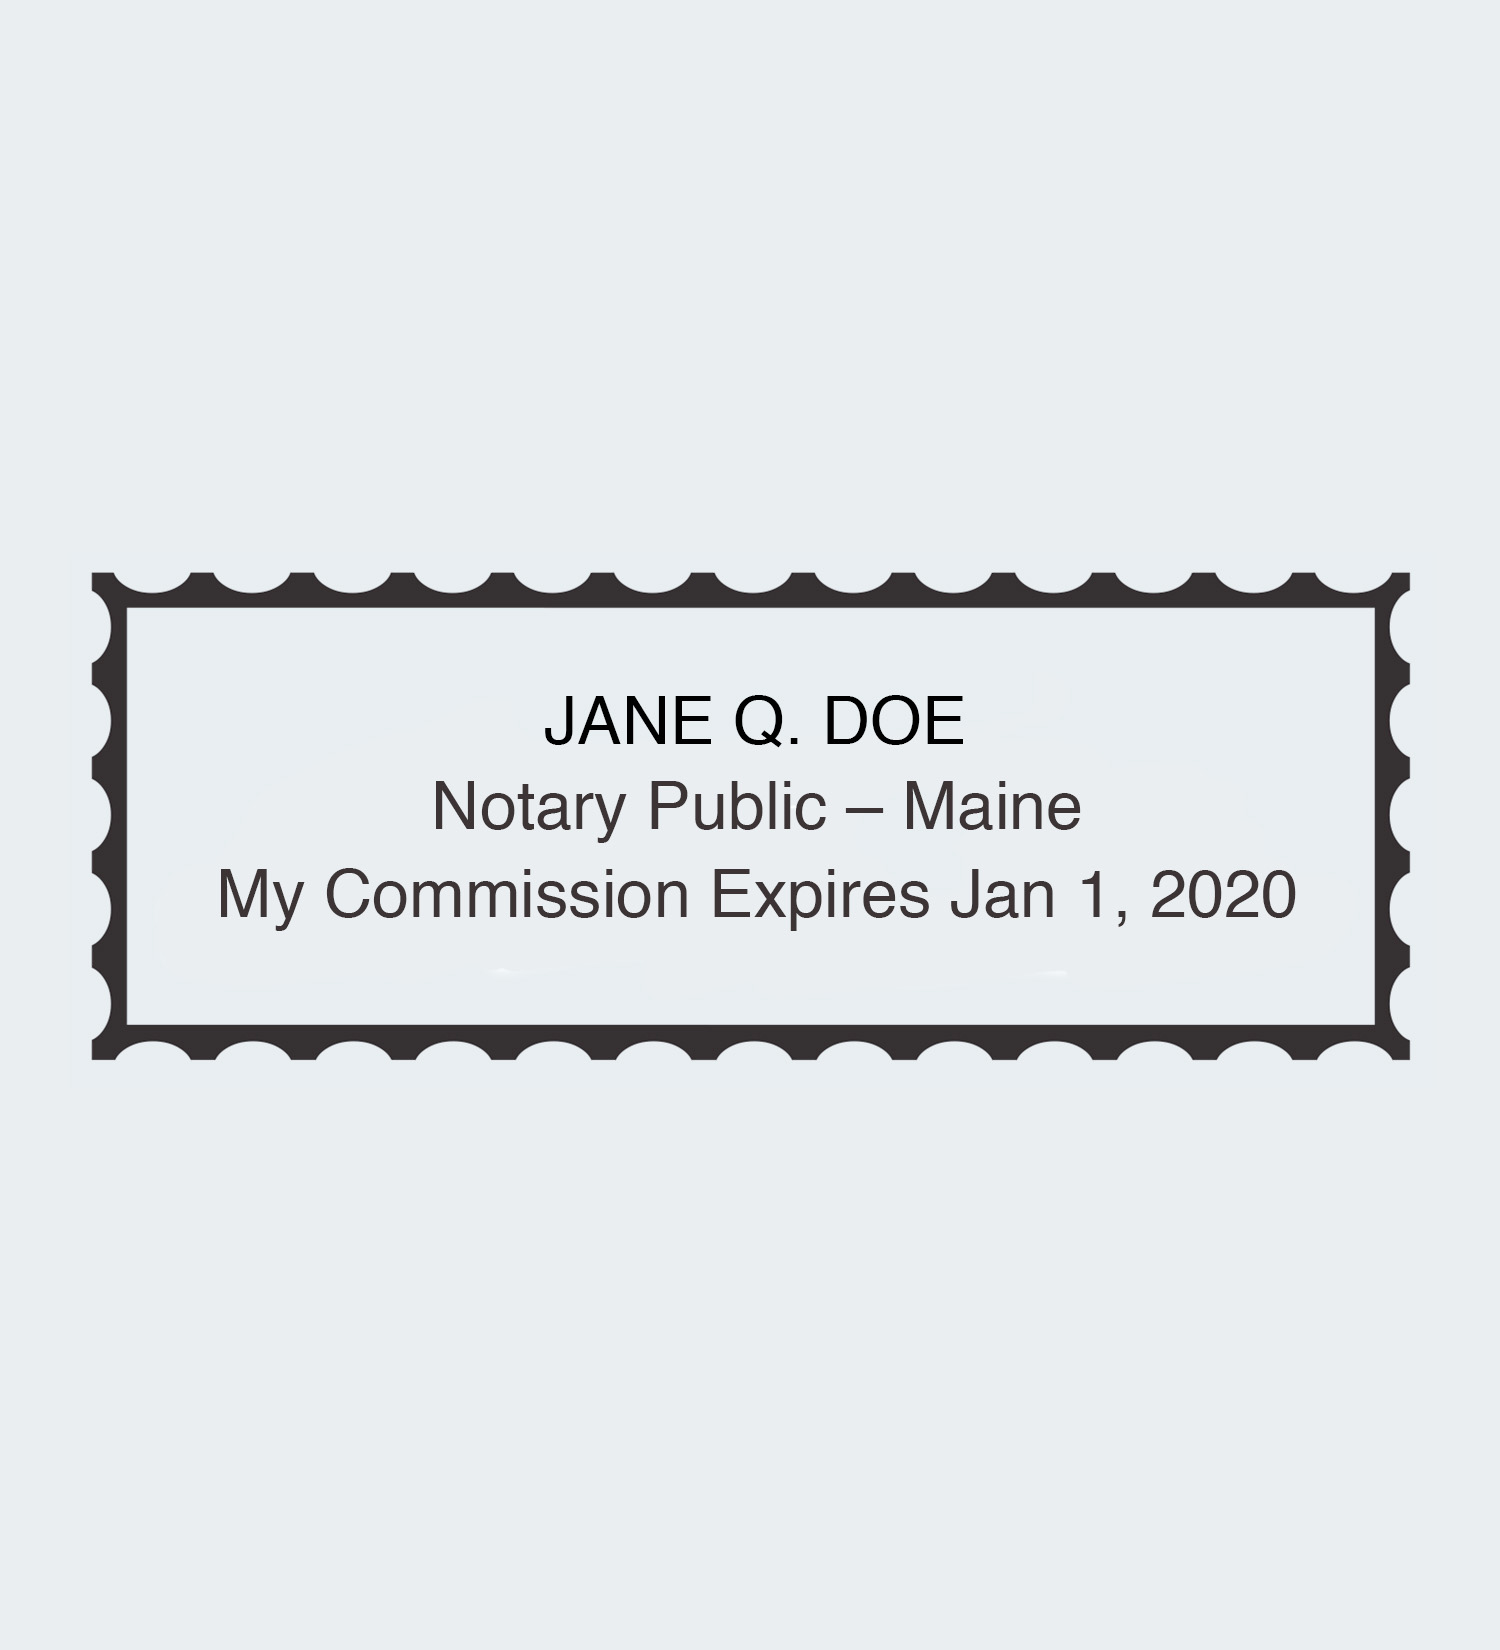 Maine Rectangular Seal Impression Notary Public How To Become